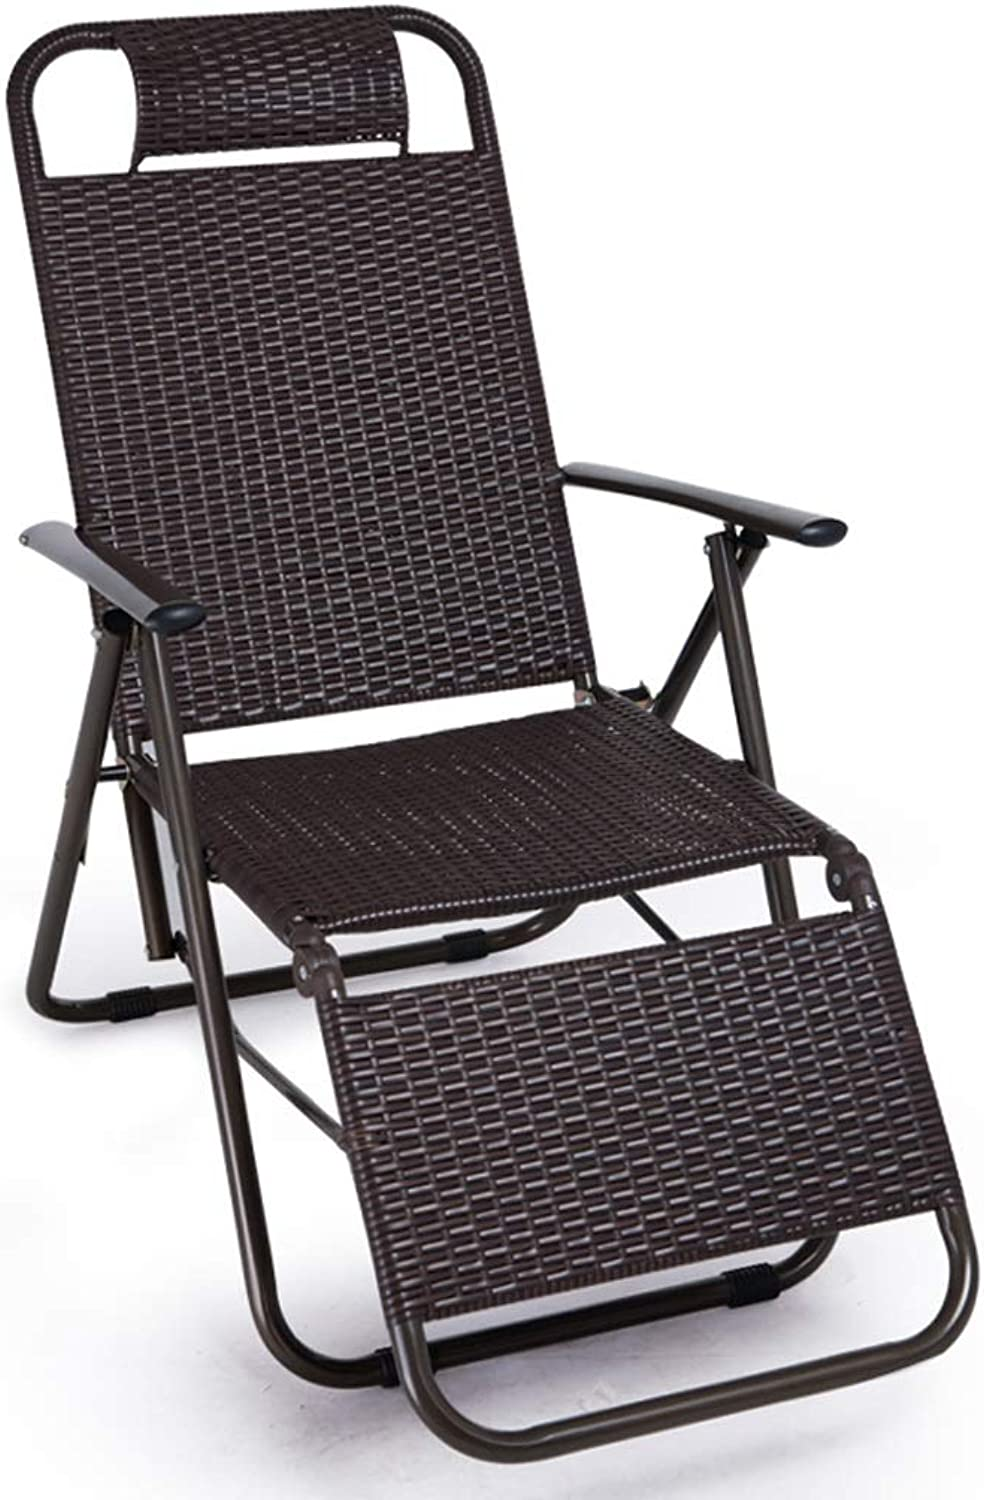 Sturdy Folding Chair HJBH Metal + Rattan Material Folding Chair Recliner Office Lunch Break Leisure Chair Leisure Chair Series Quality Assurance Size  High 94CM  Width 47.5CM color (coff